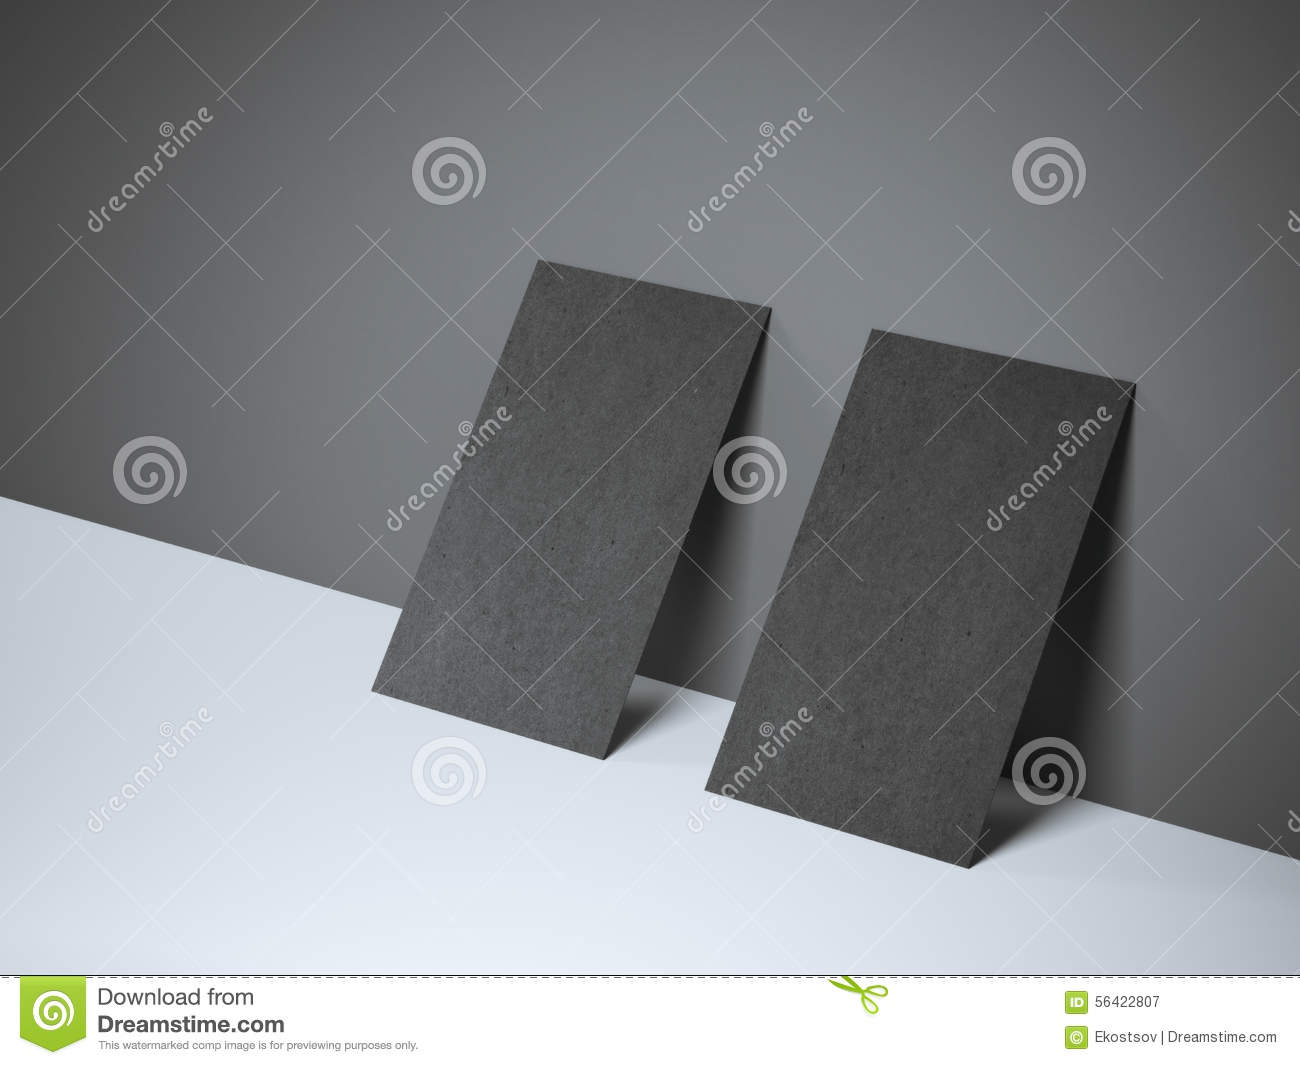 Two Black Blank Business Cards Stock Image - Image of cardboard ...